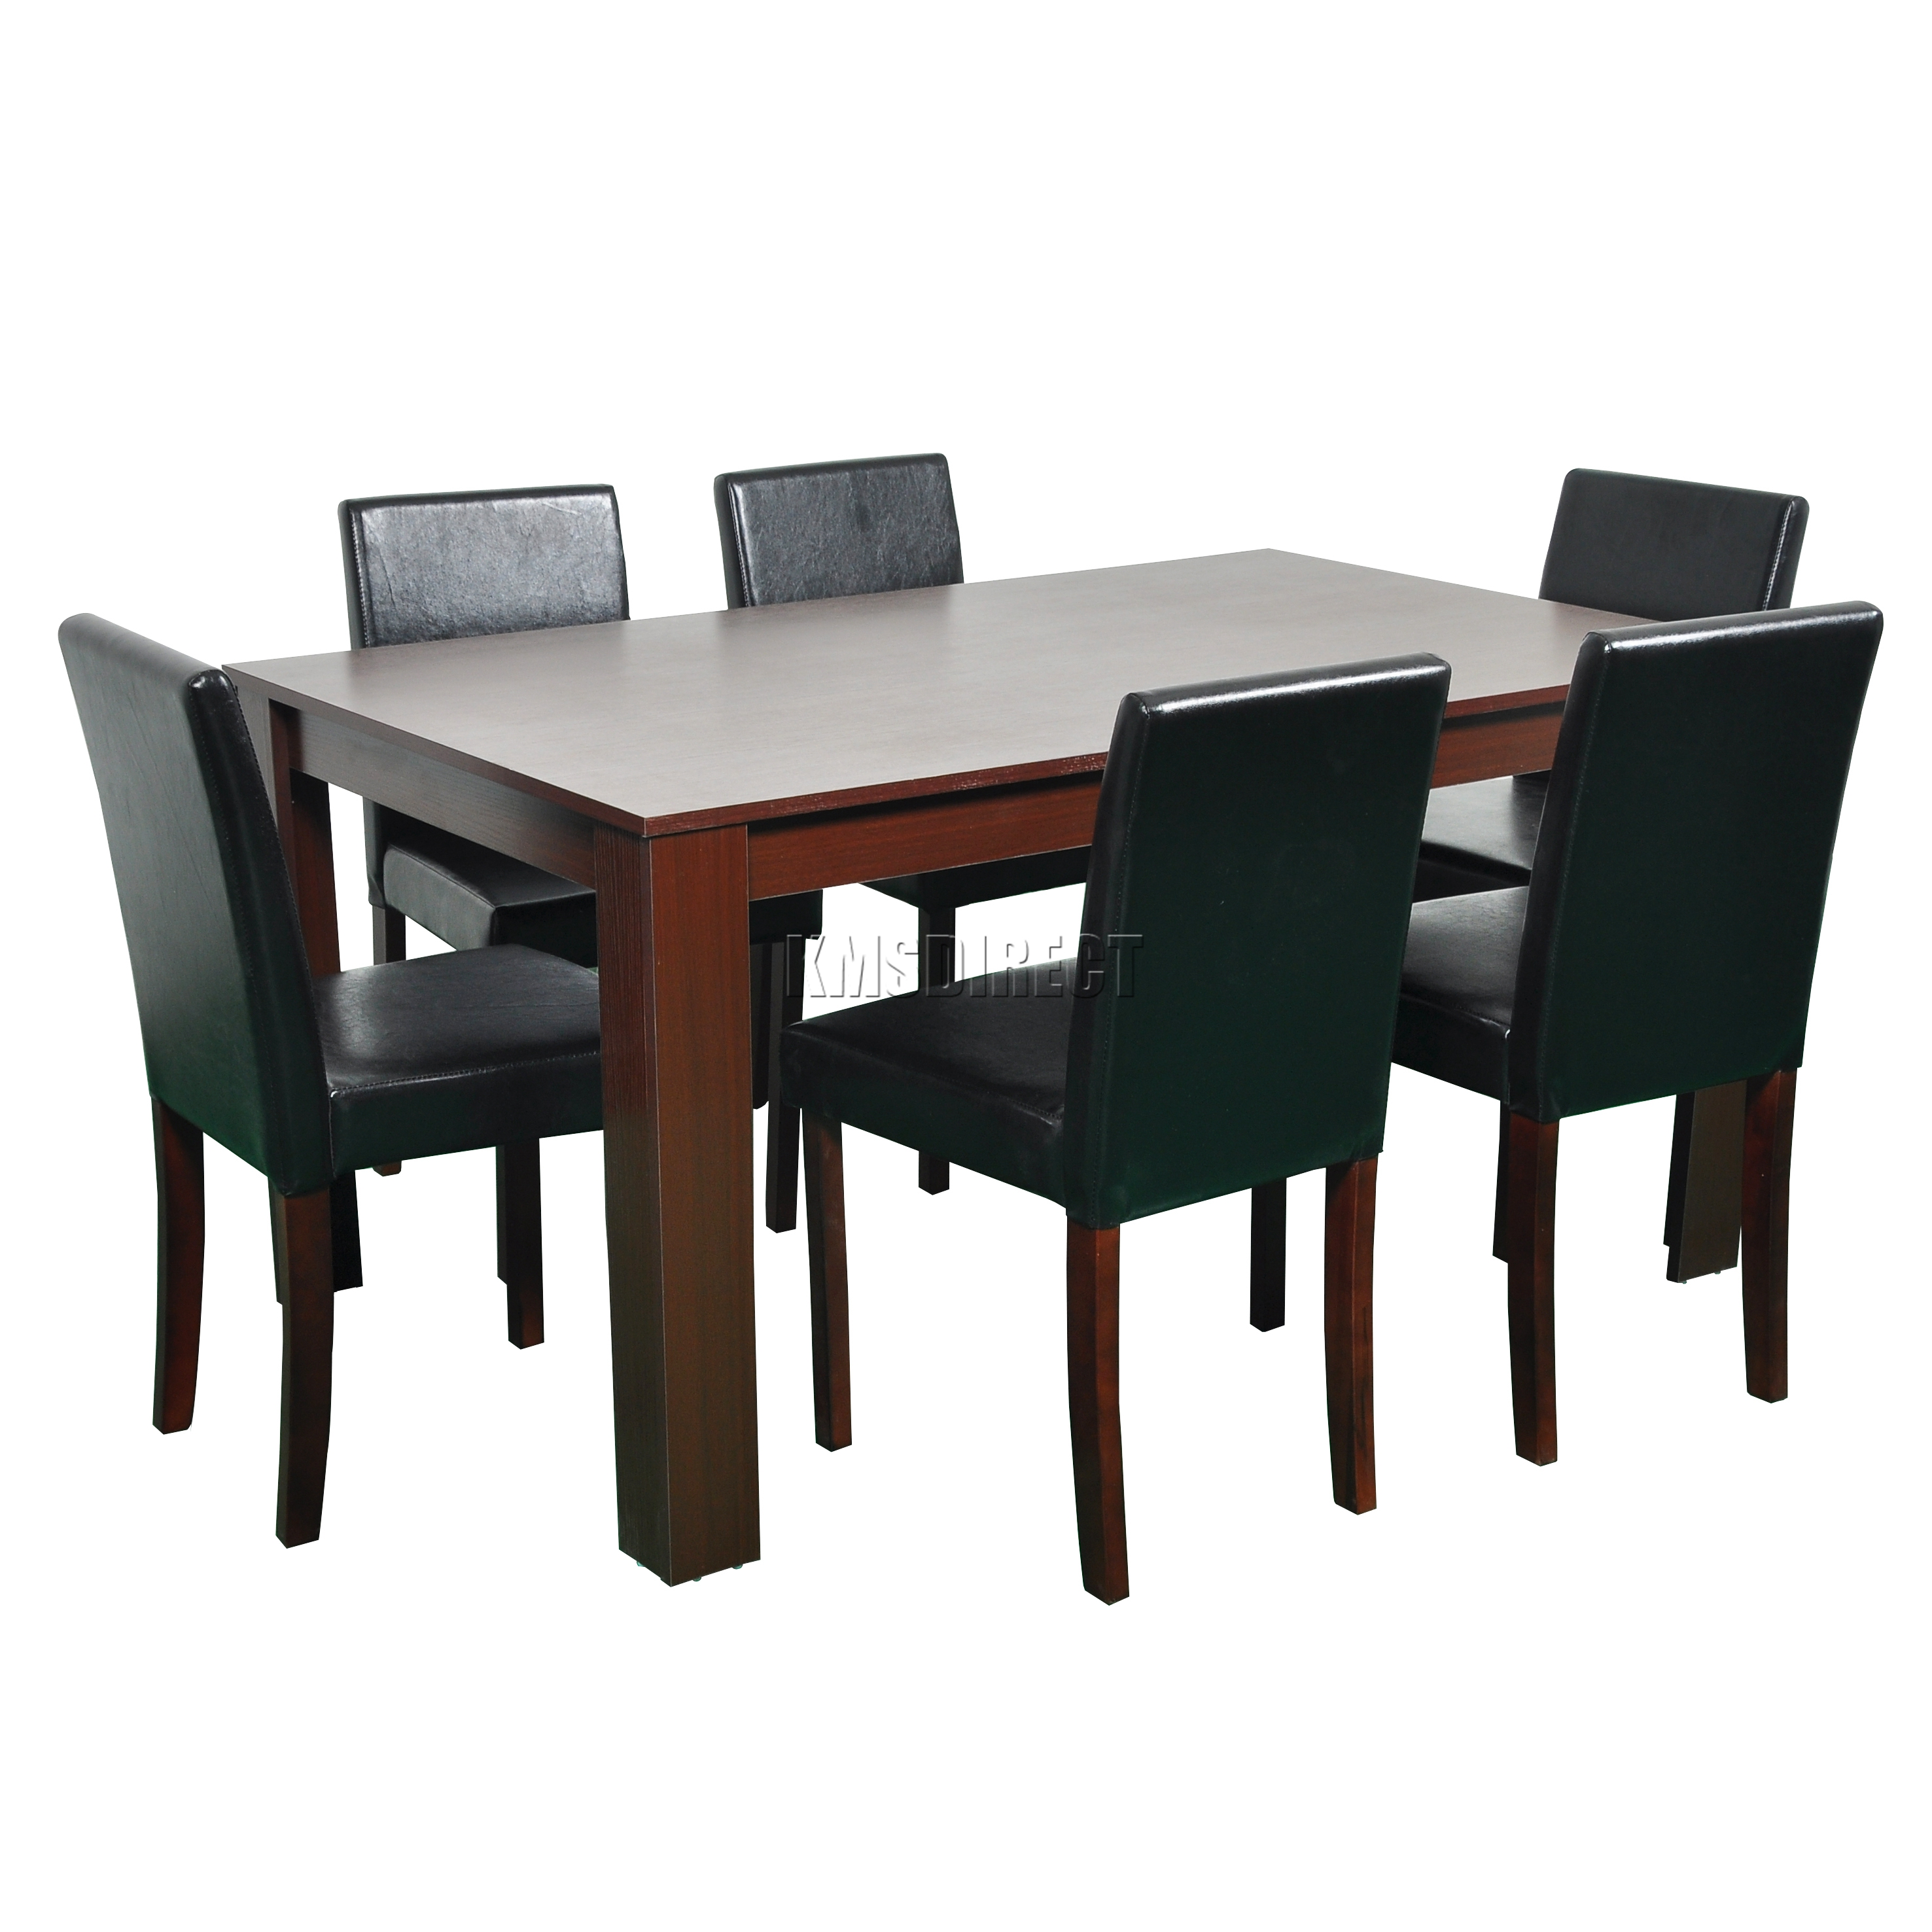 Foxhunter wooden dining table and 6 pu faux leather chairs set furniture walnut ebay Wooden dining table and chairs